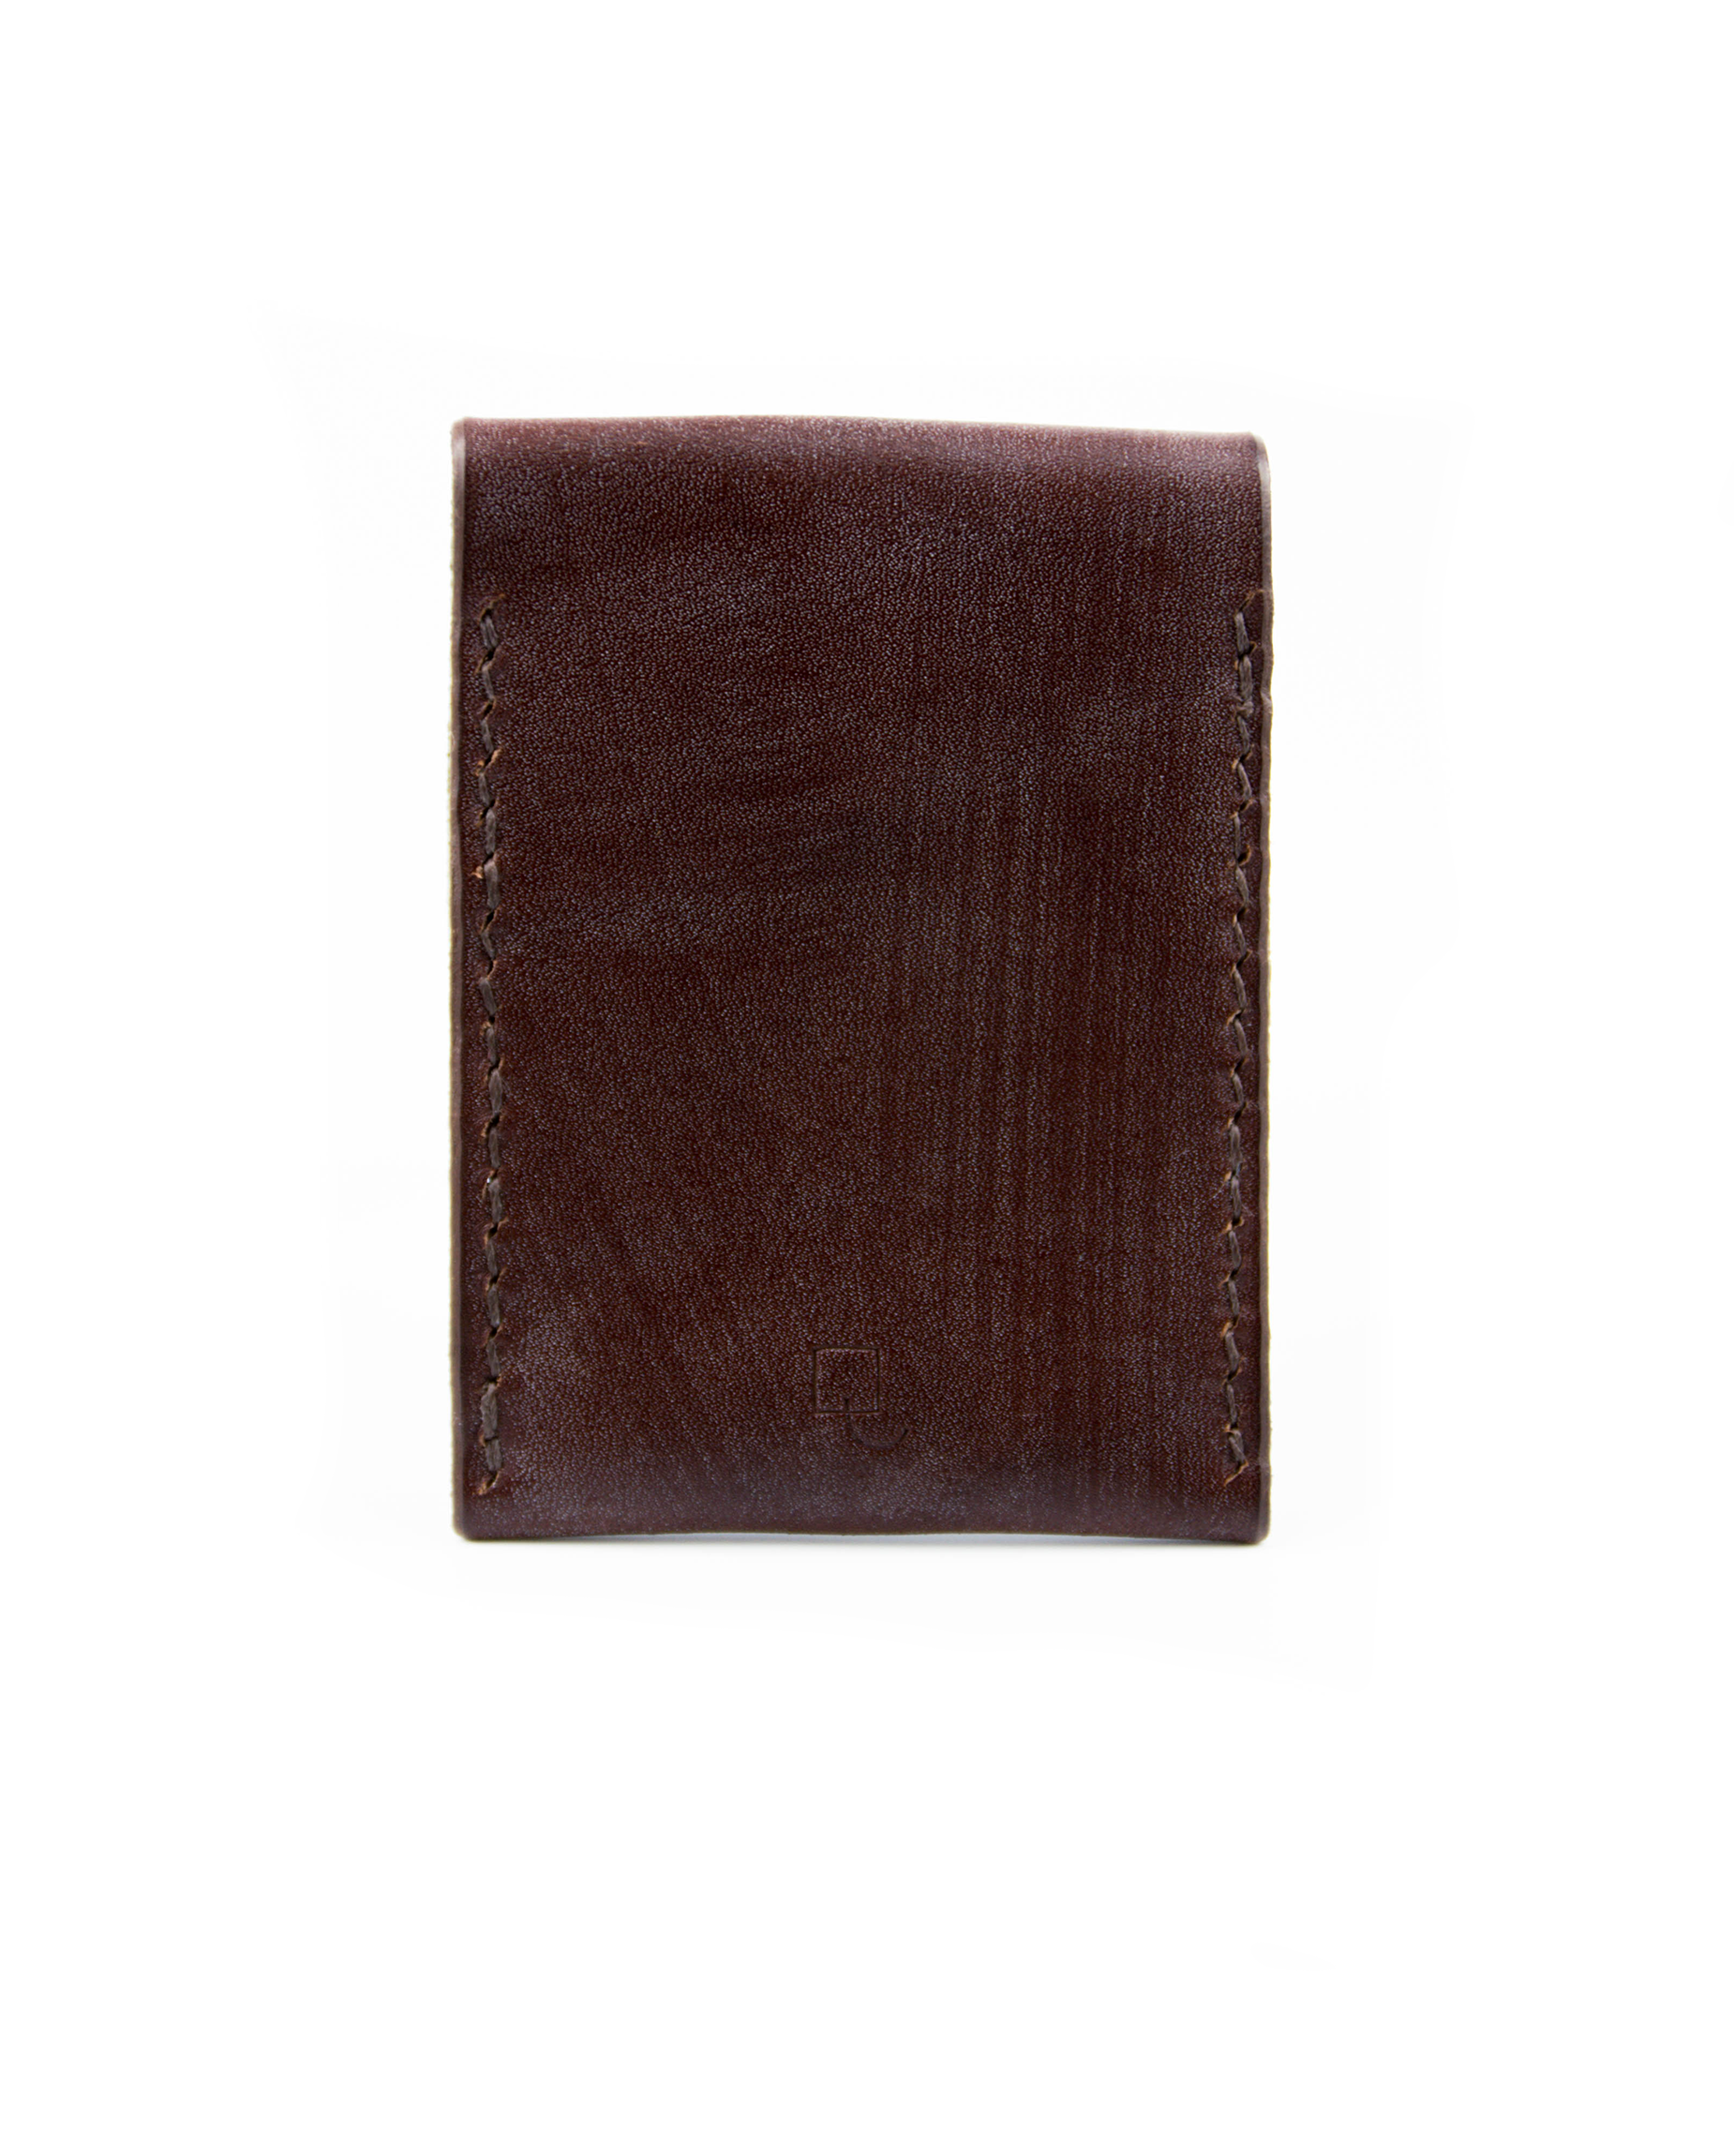 Coin Wallet - Brown - Debonair